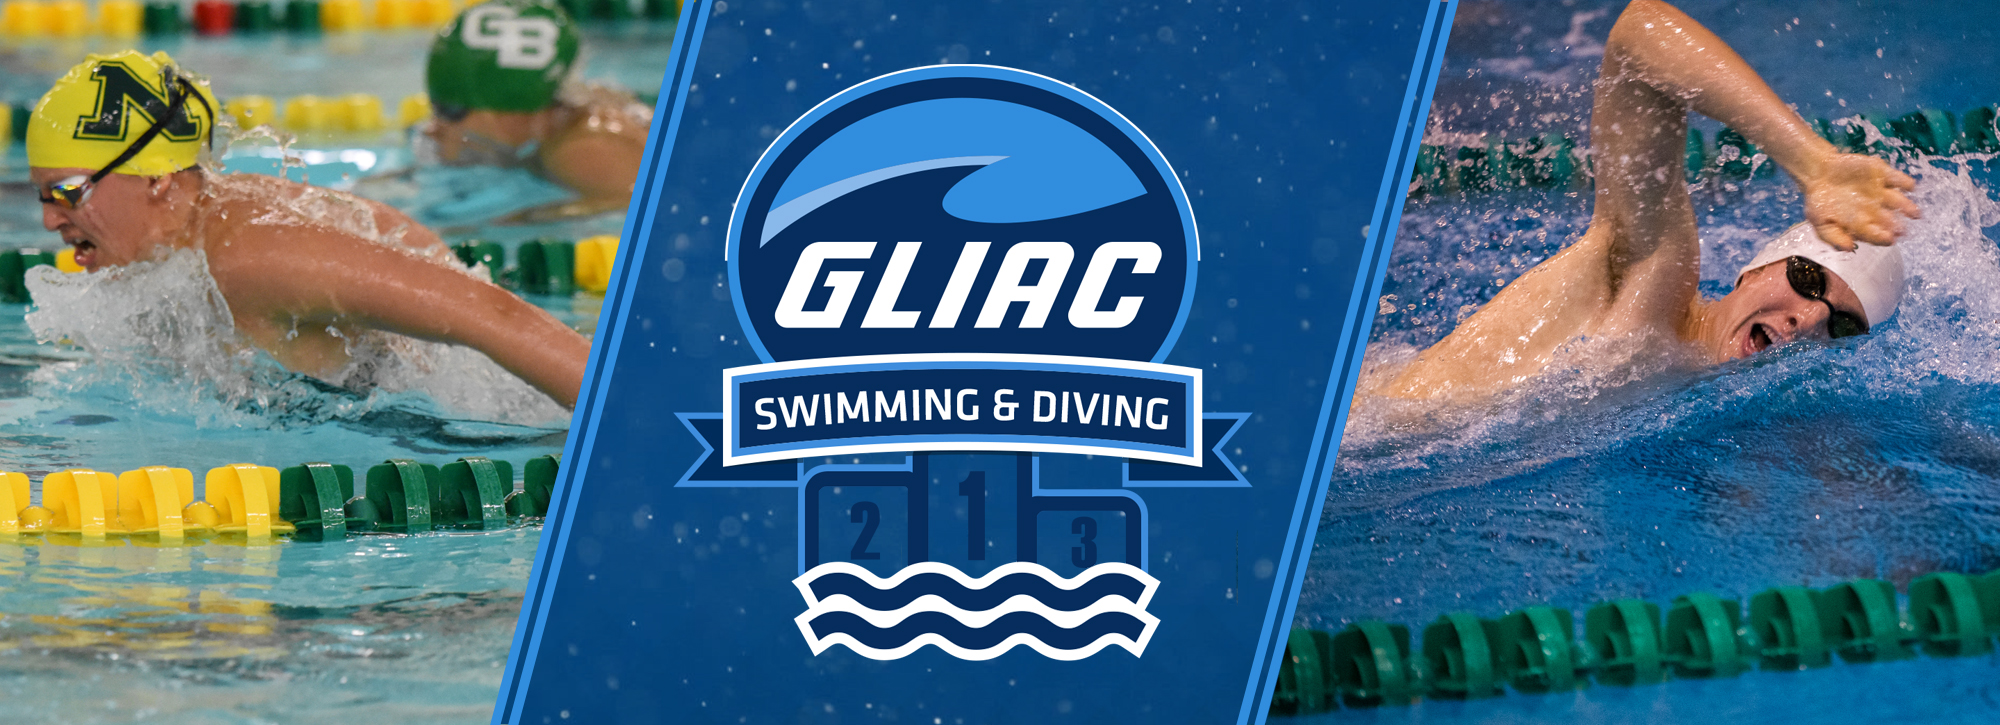 NMU's Helm and WSU's Katulski capture Week 10 swimming and diving honors